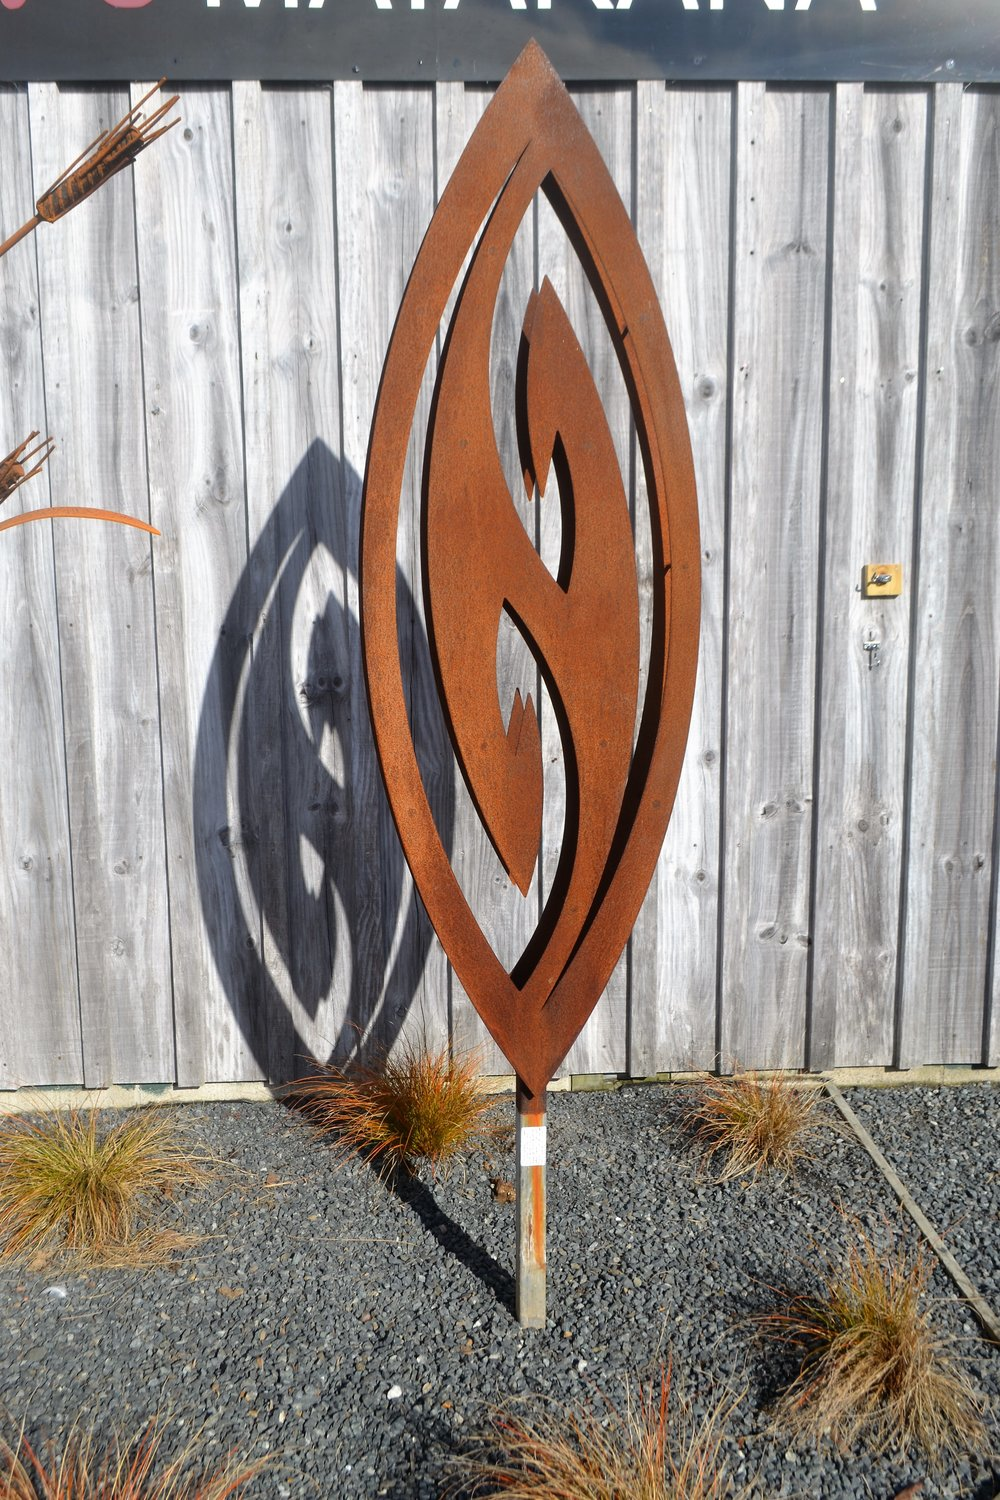 'Utterly Hooked' 3D Corten Fish Hook  Grounded Art NZ, 1800mm tall  sold